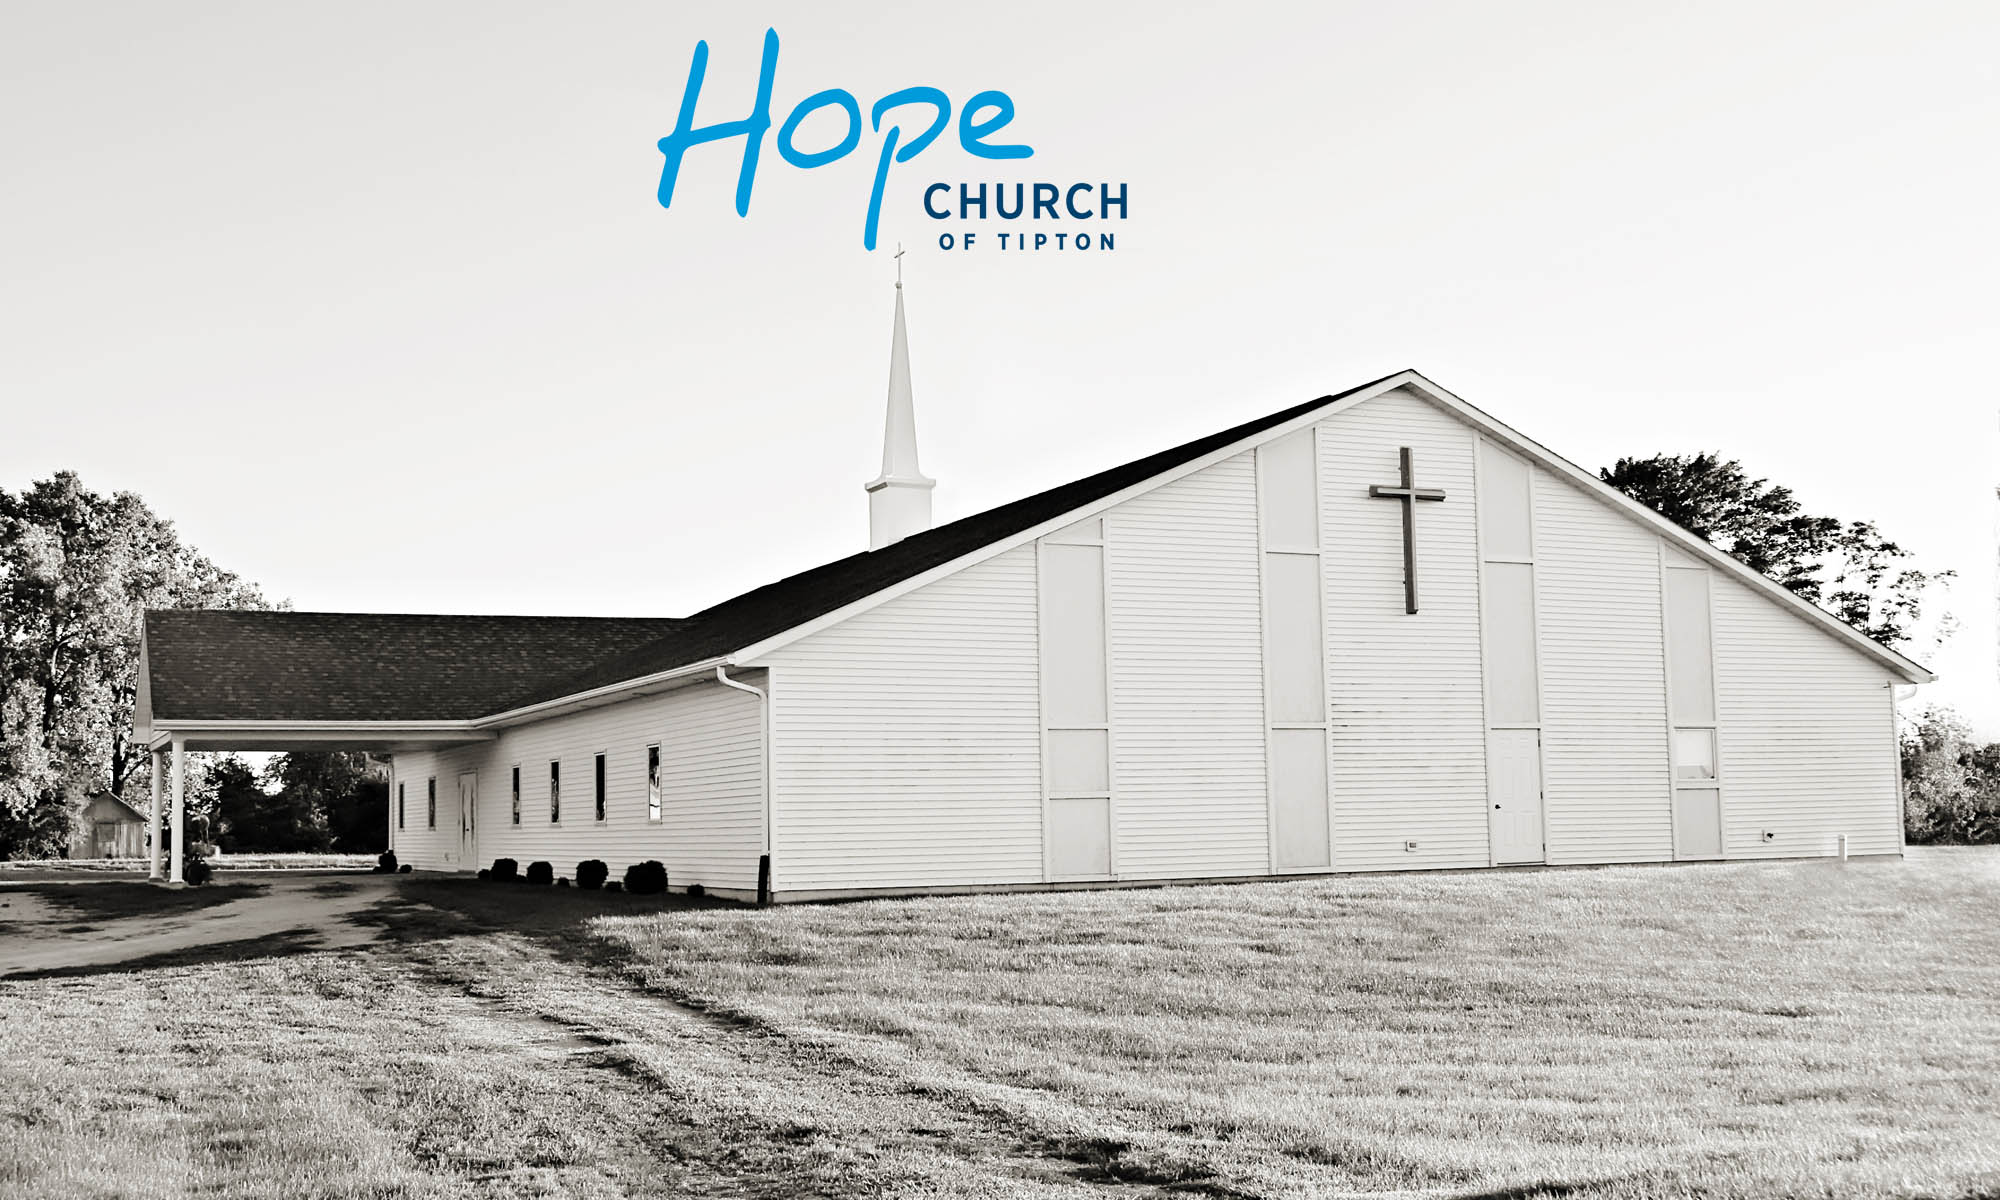 Hope Church of Tipton